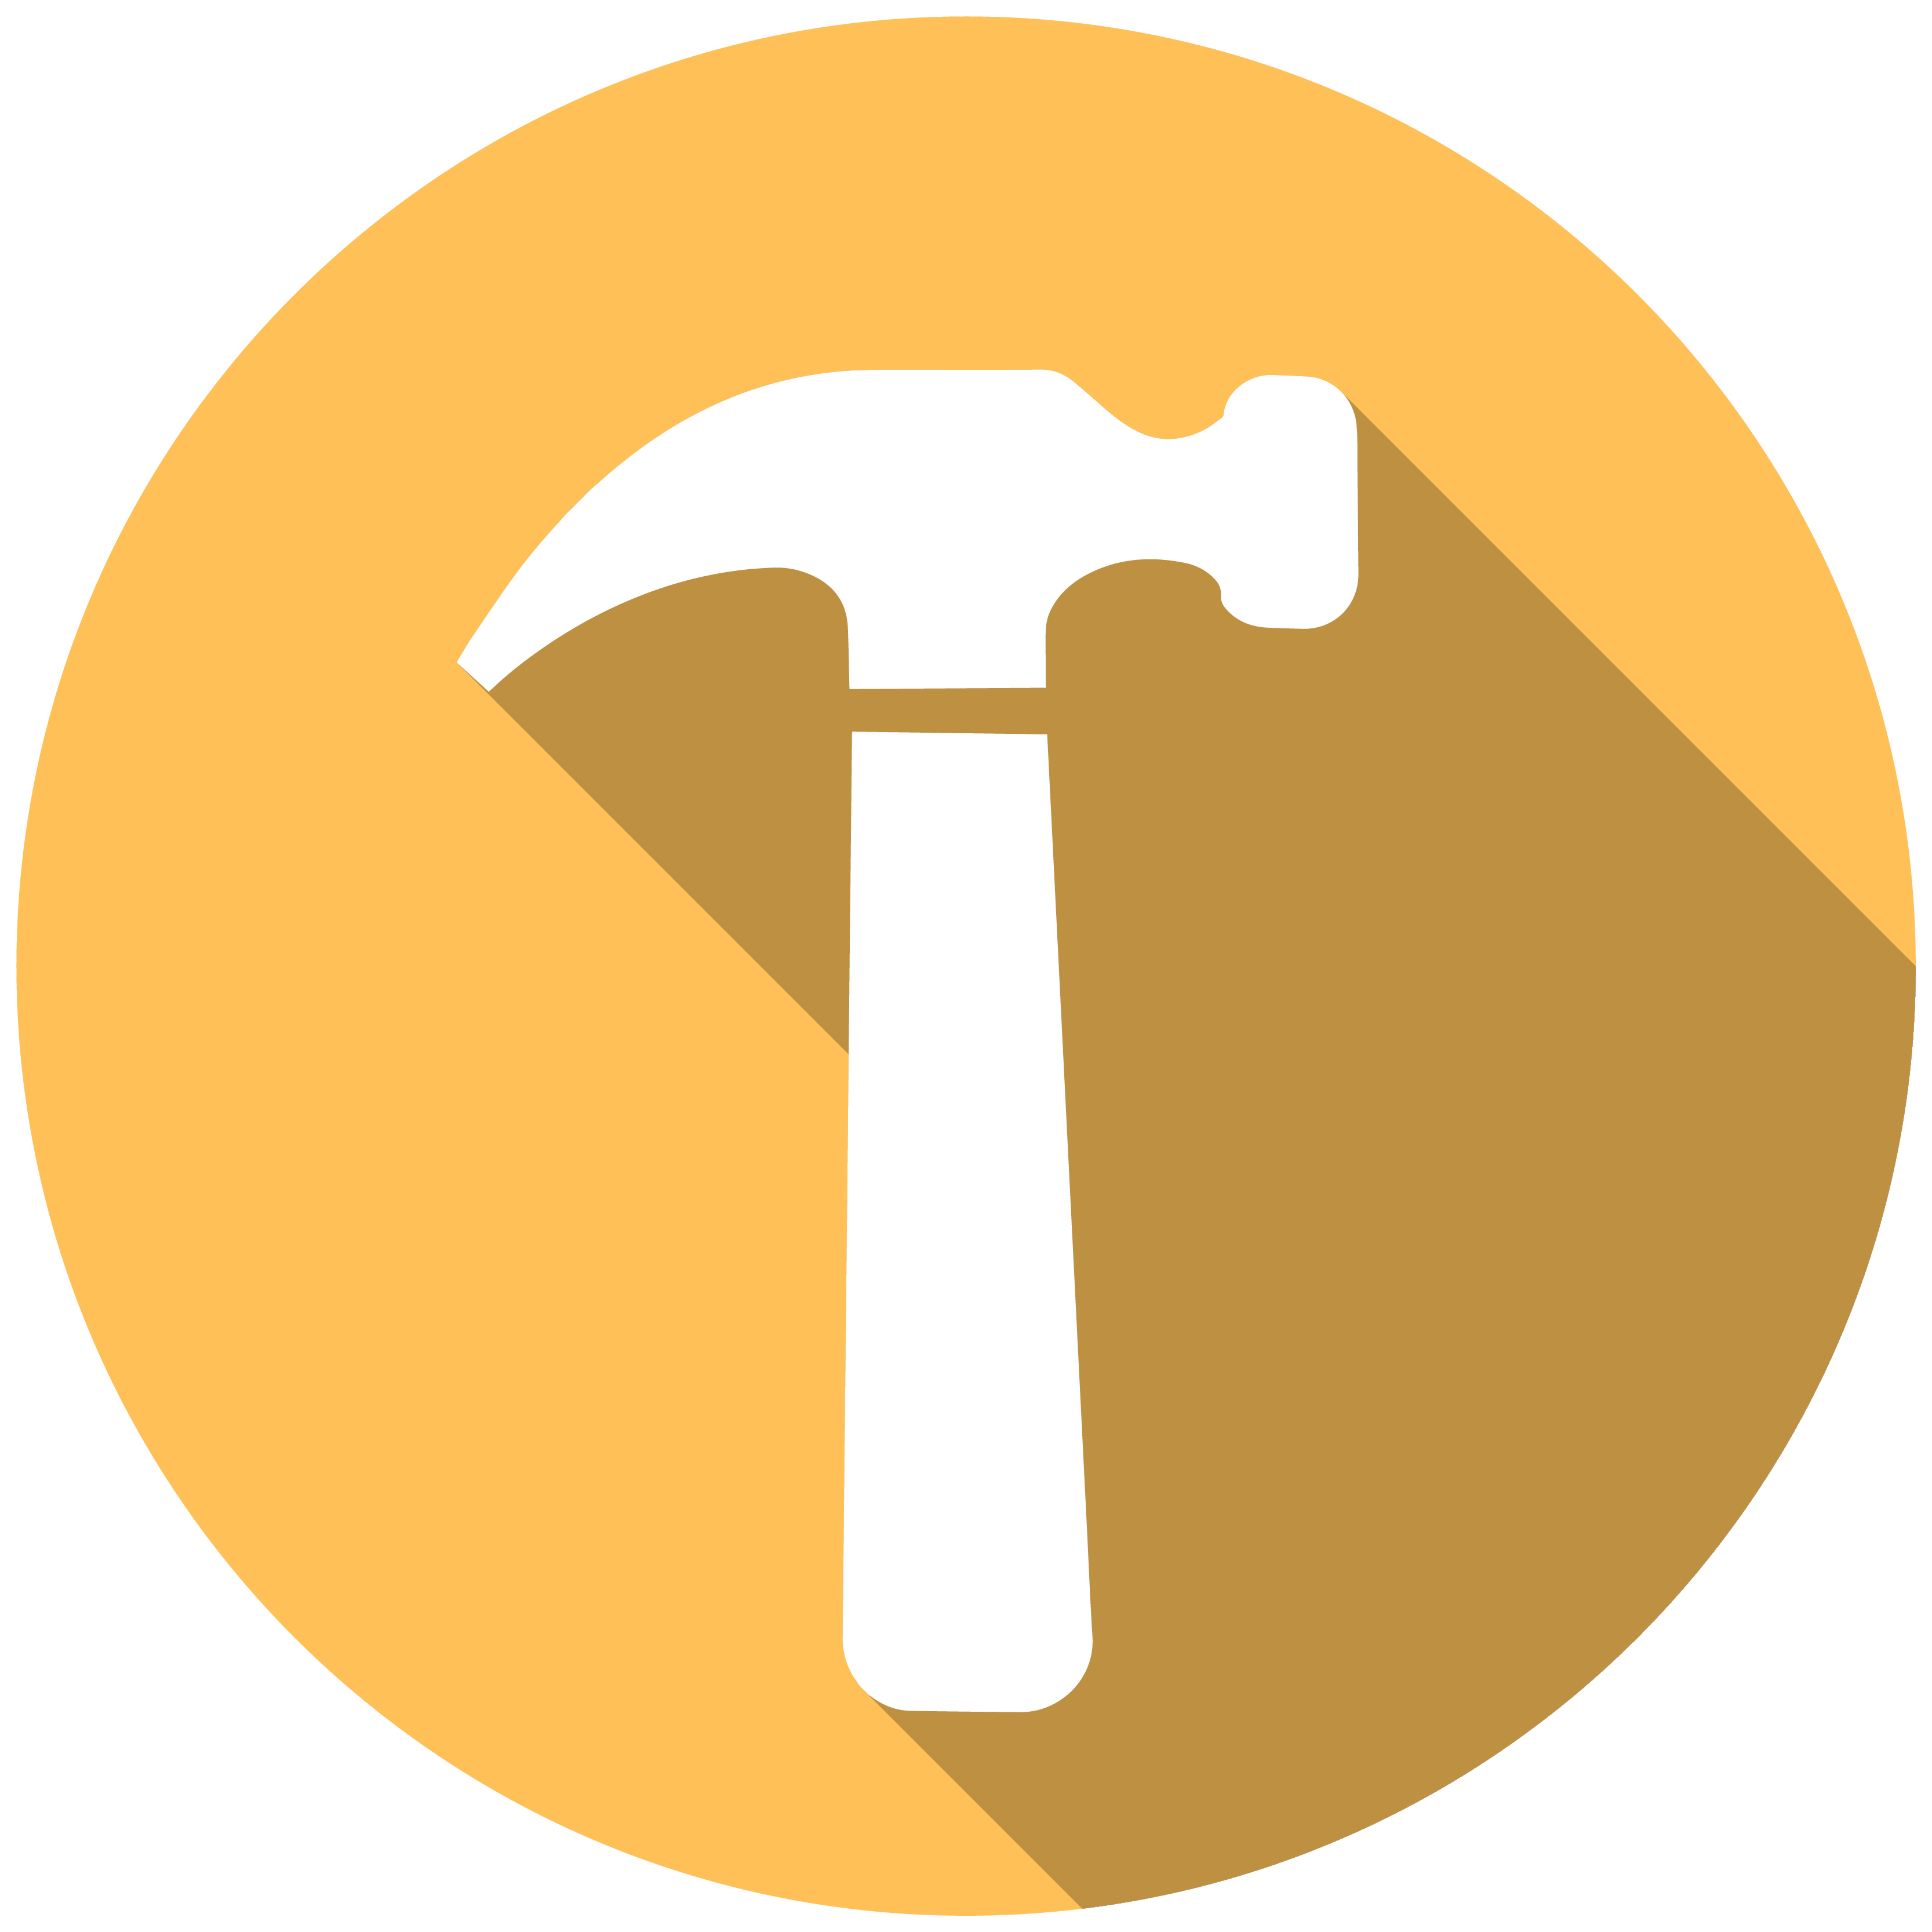 Clipart hammer yellow hammer. Icon housing and residential